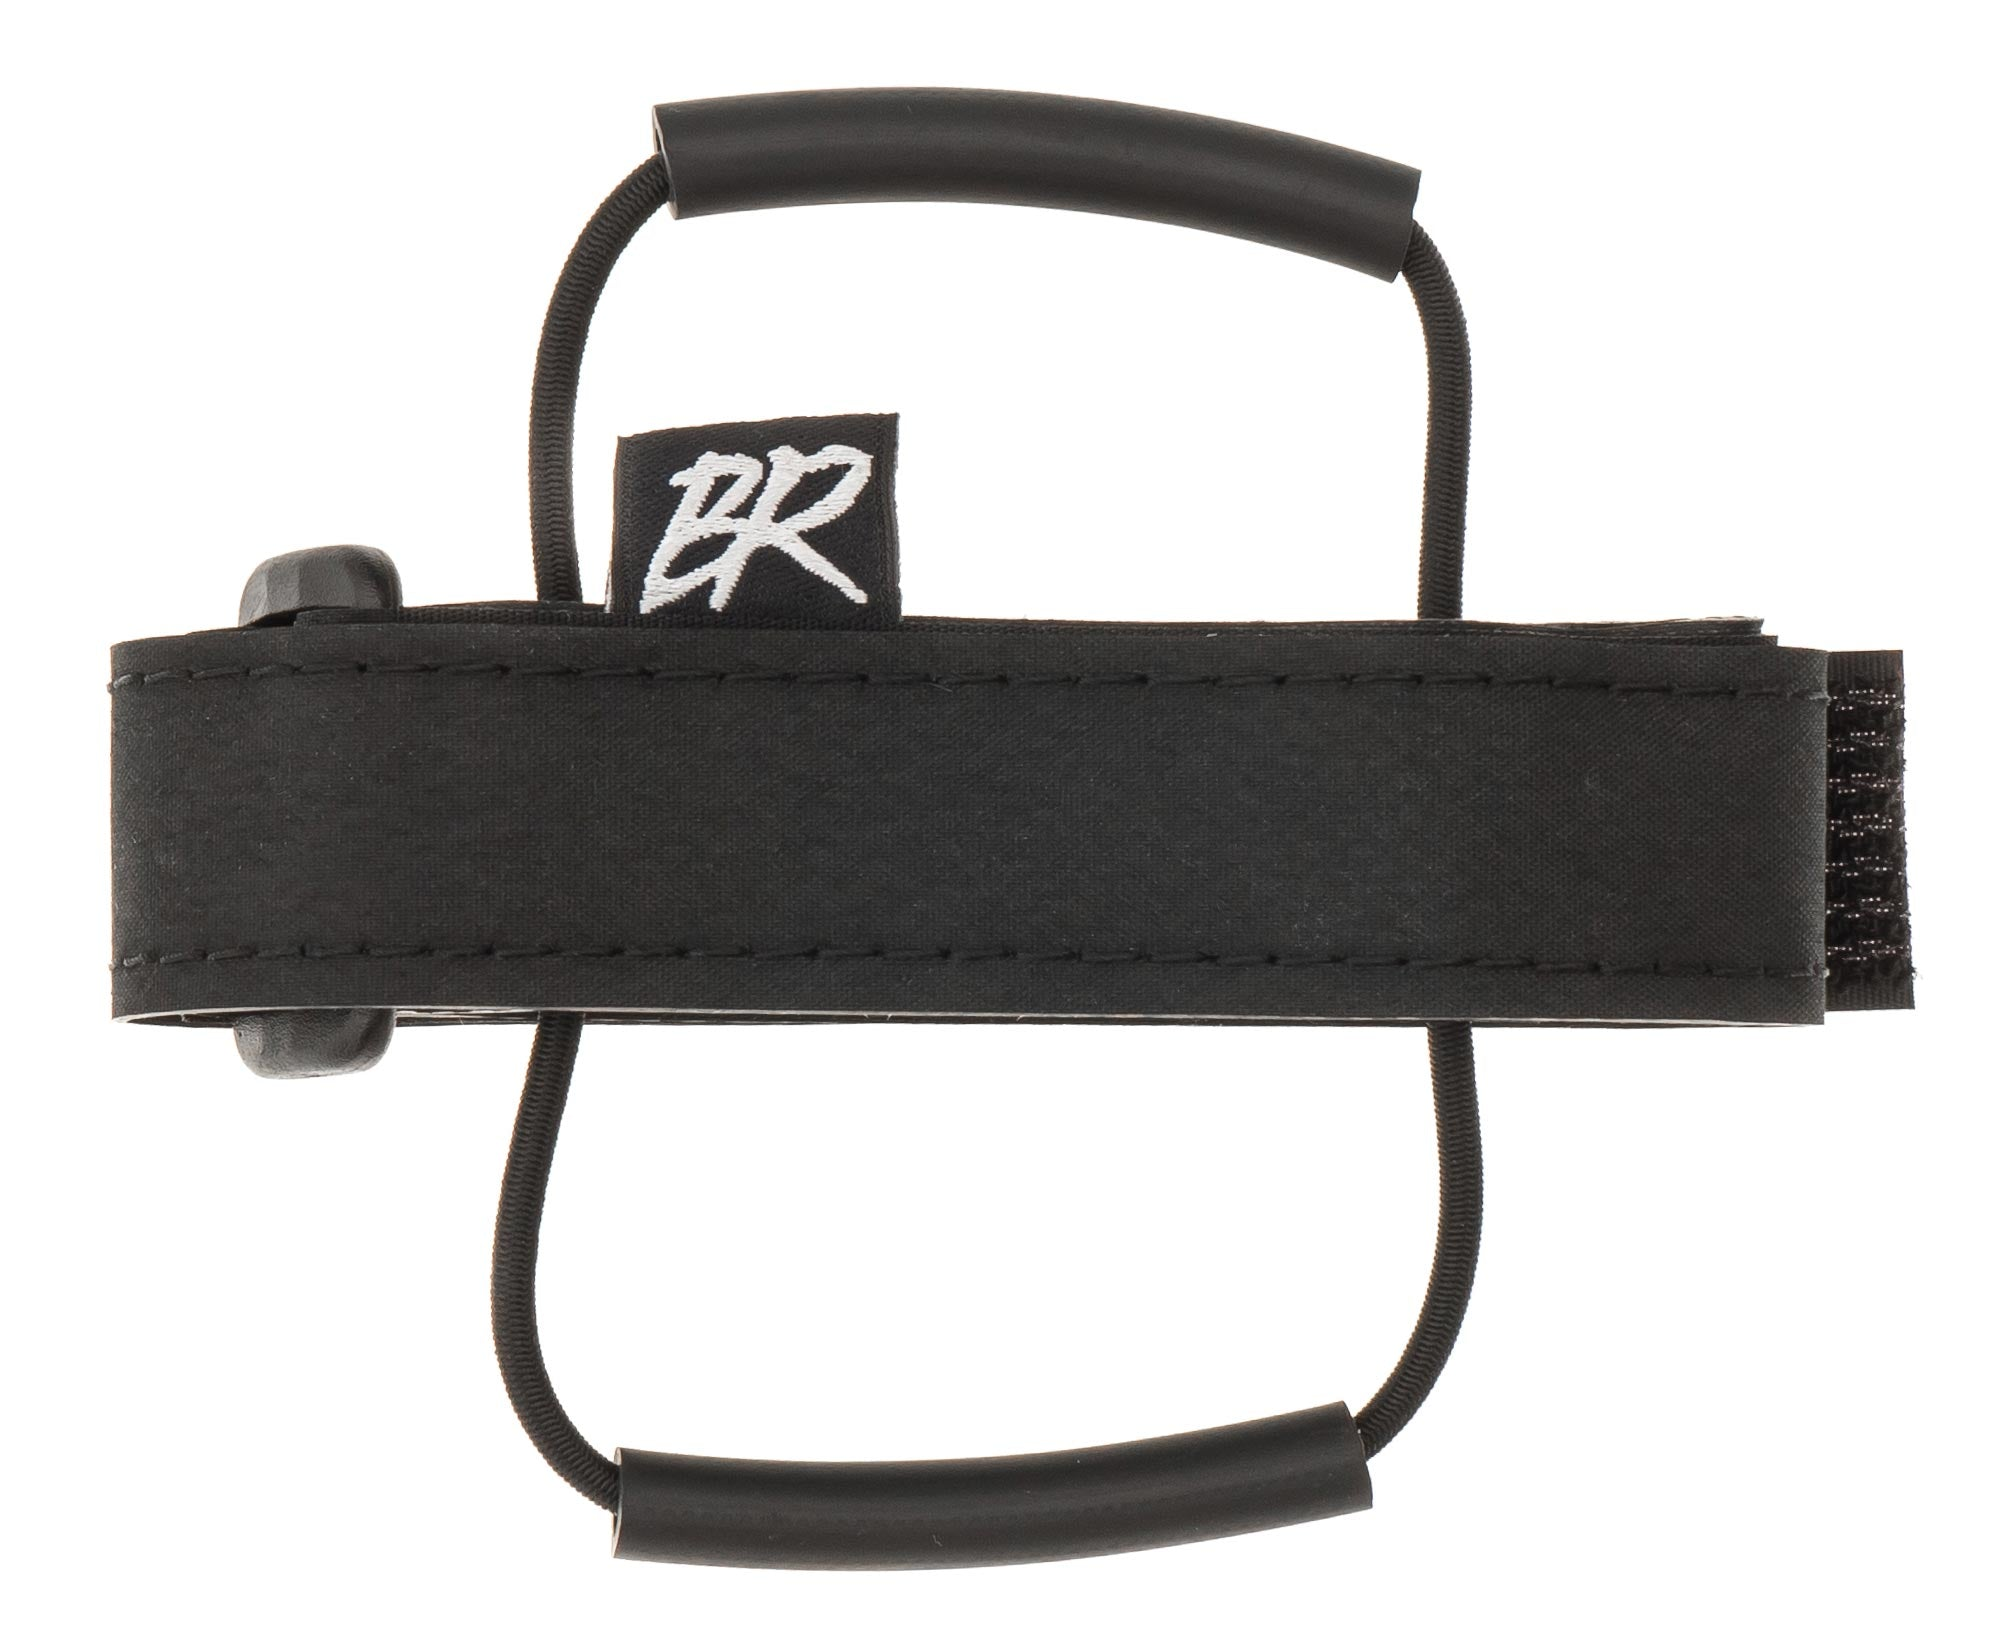 Backcountry Research Mutherload Frame Strap Royal Blue